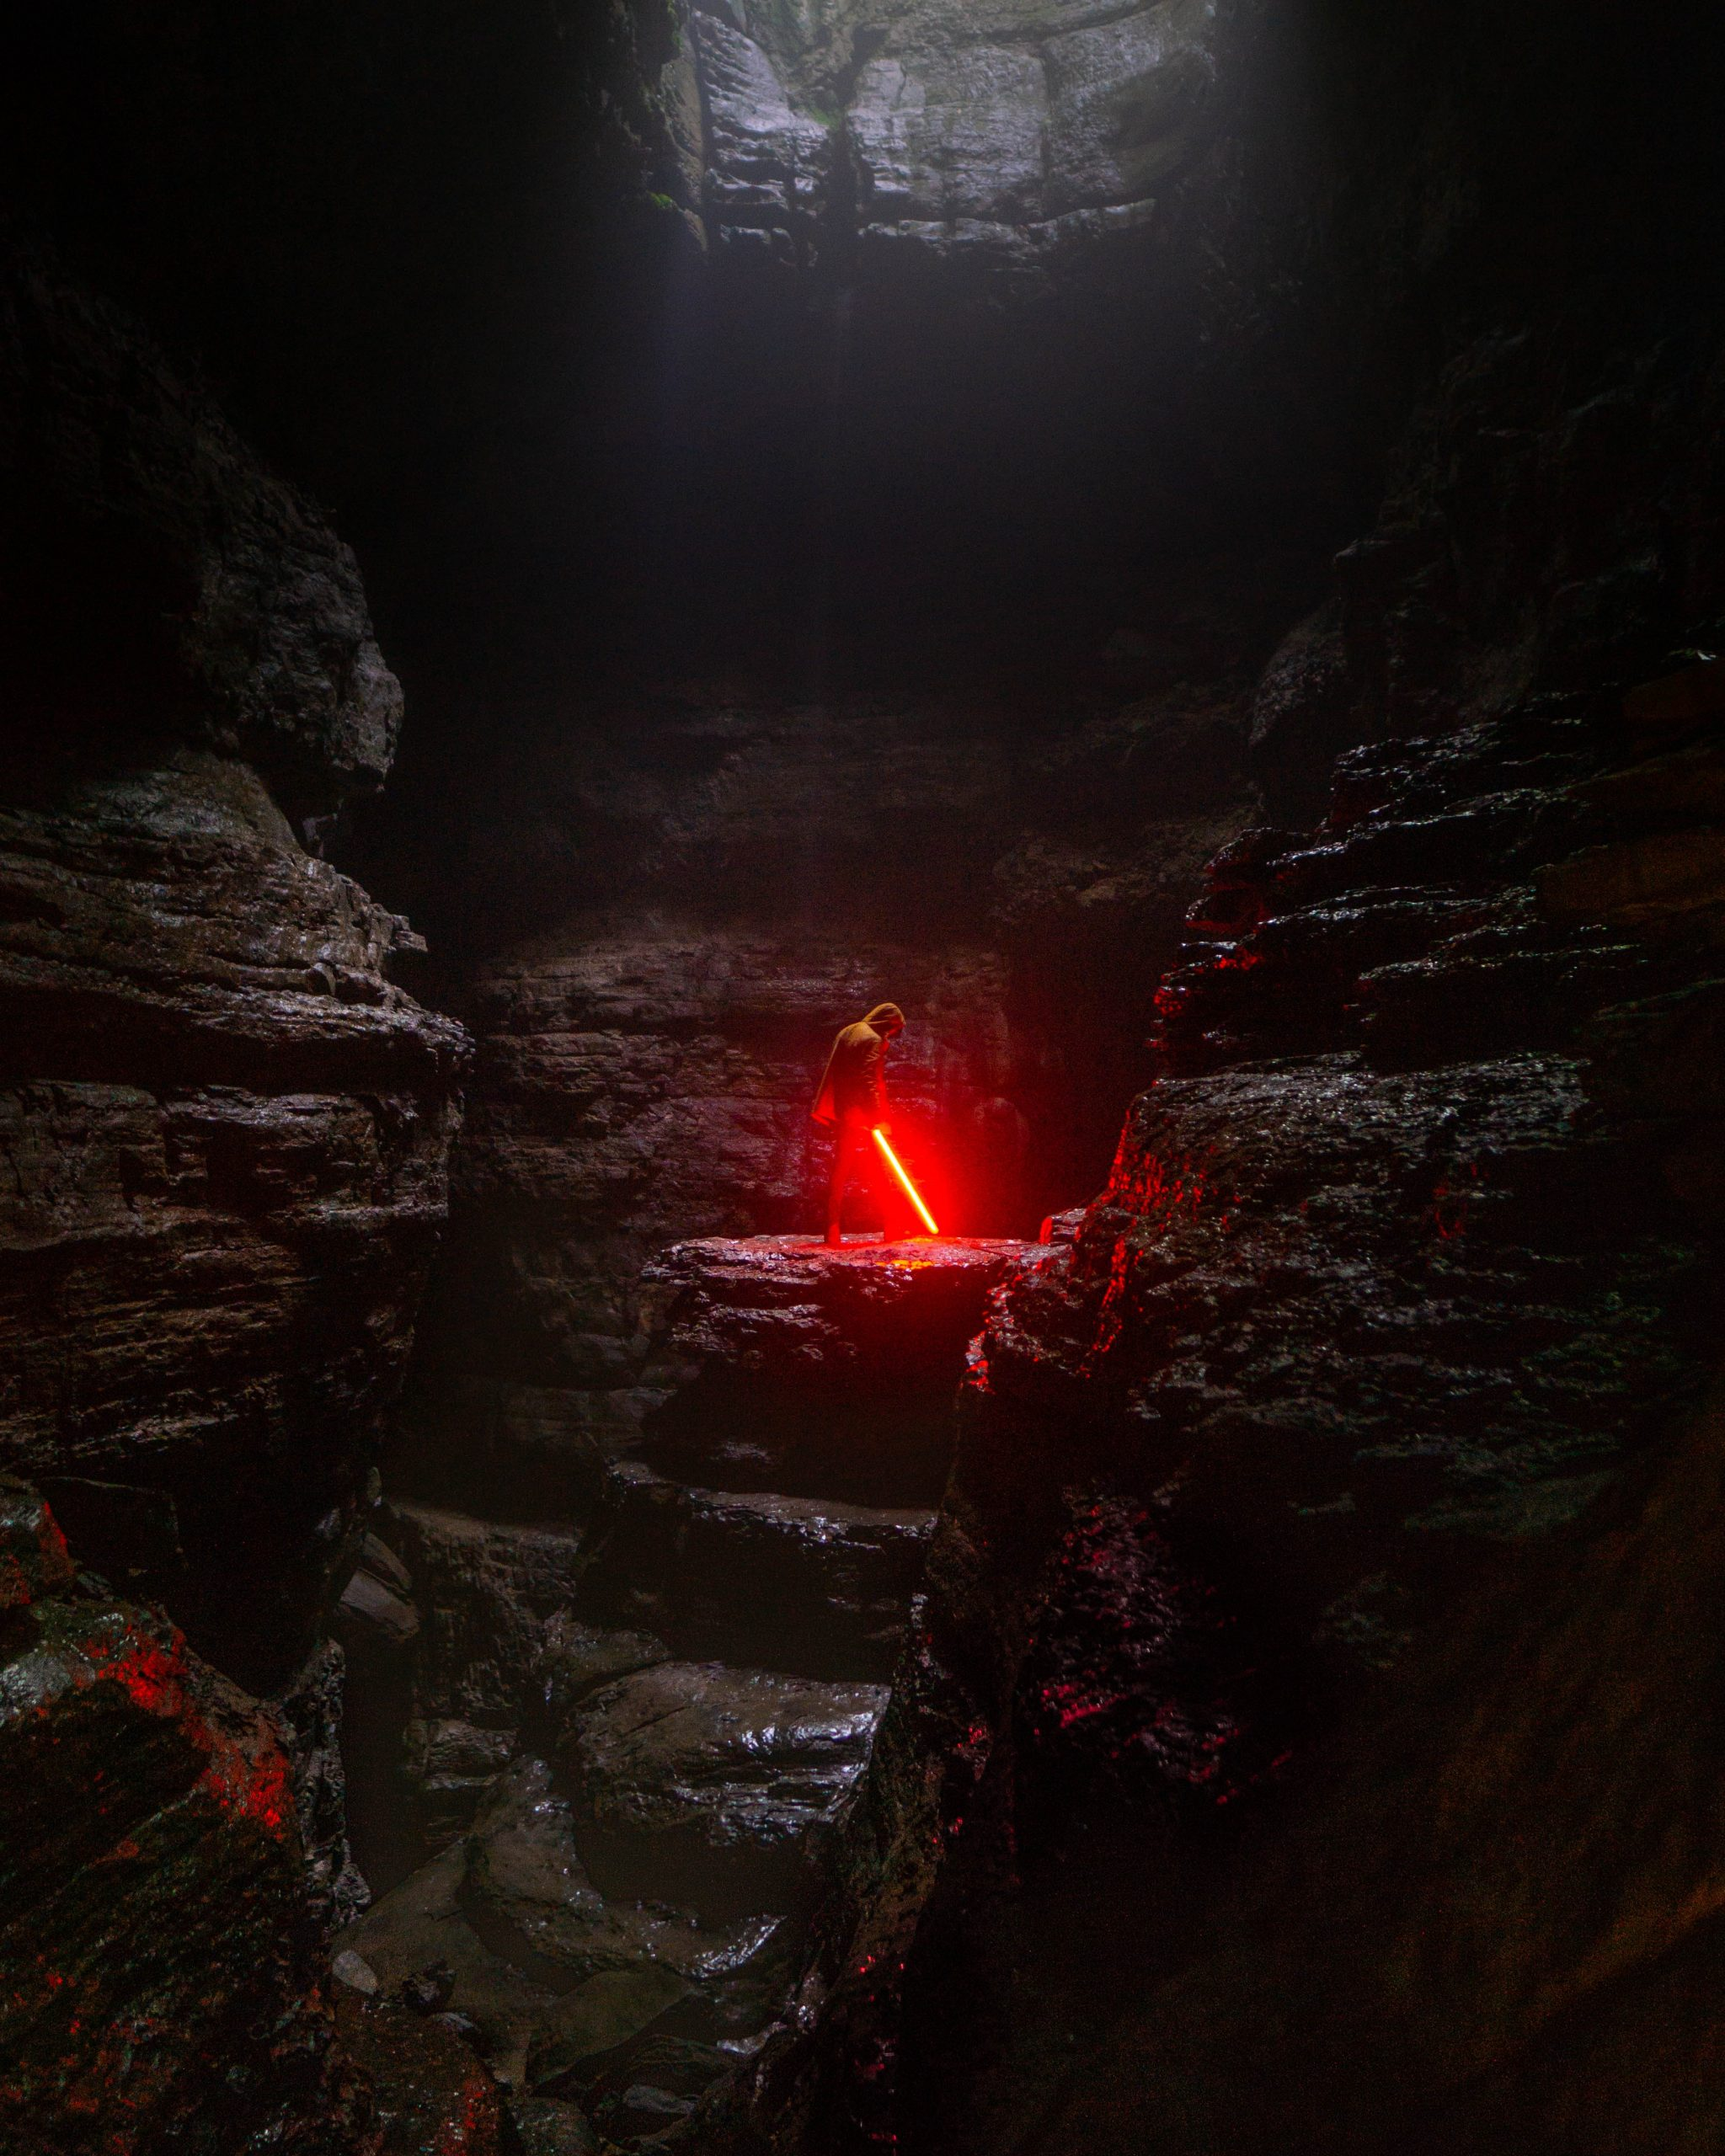 A Jedi holding a red light saber in a cave